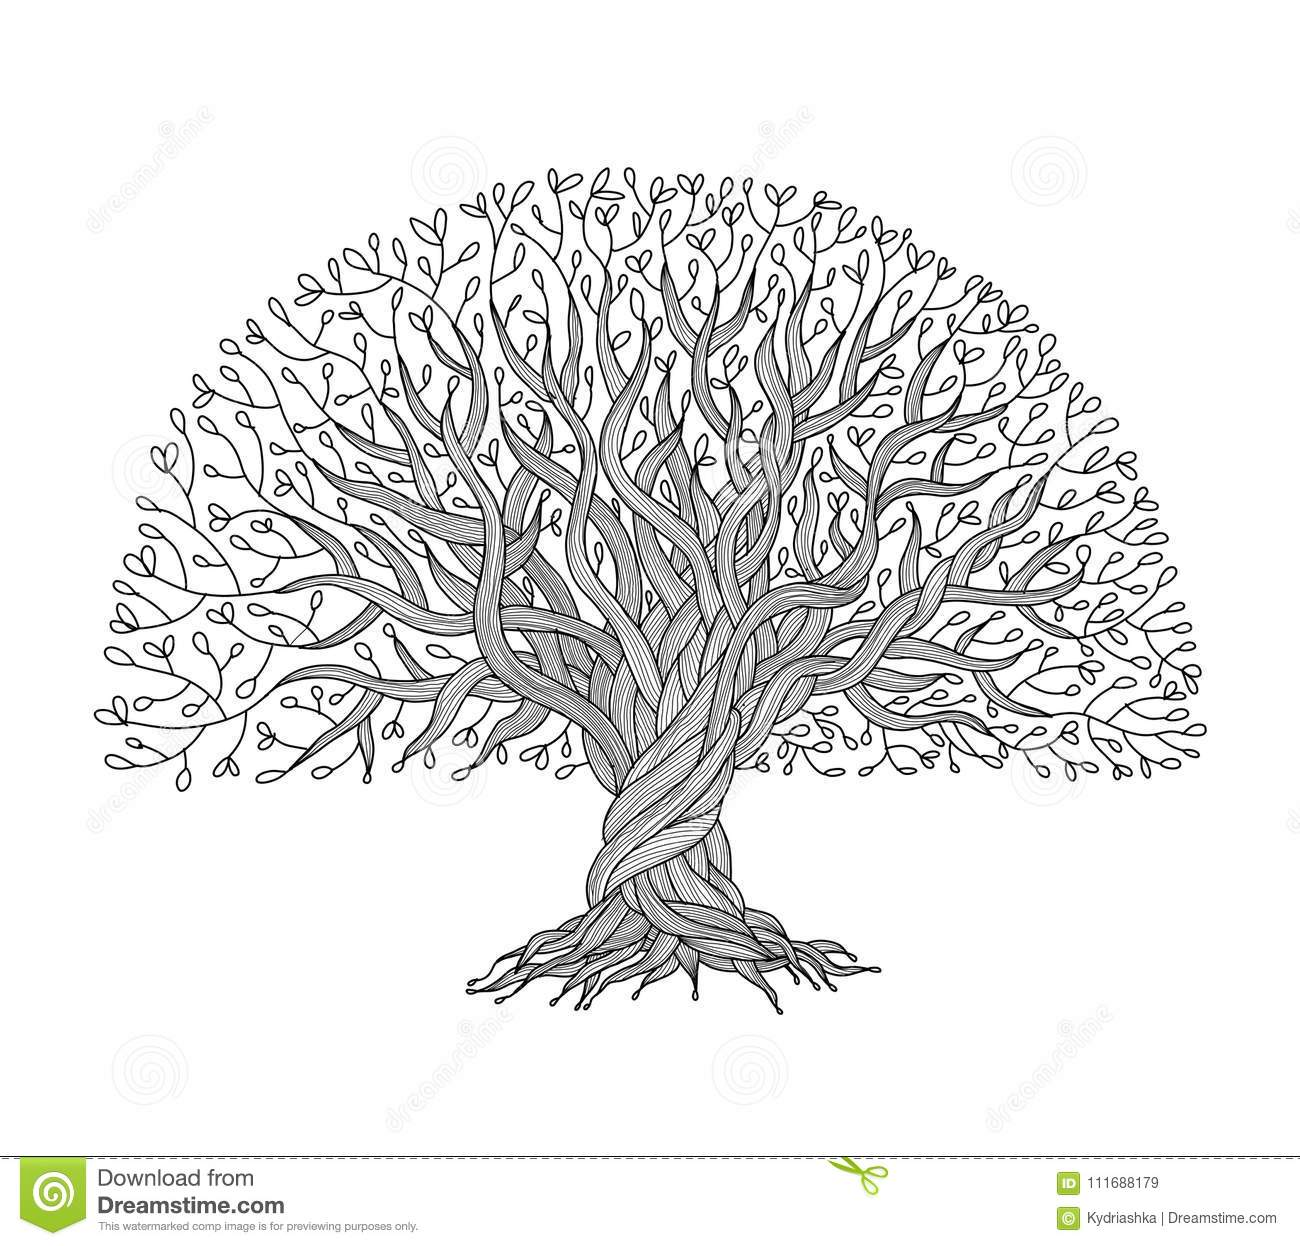 Big Tree With Roots For Your Design Stock Vector Illustration Of Ornament Olive 111688179